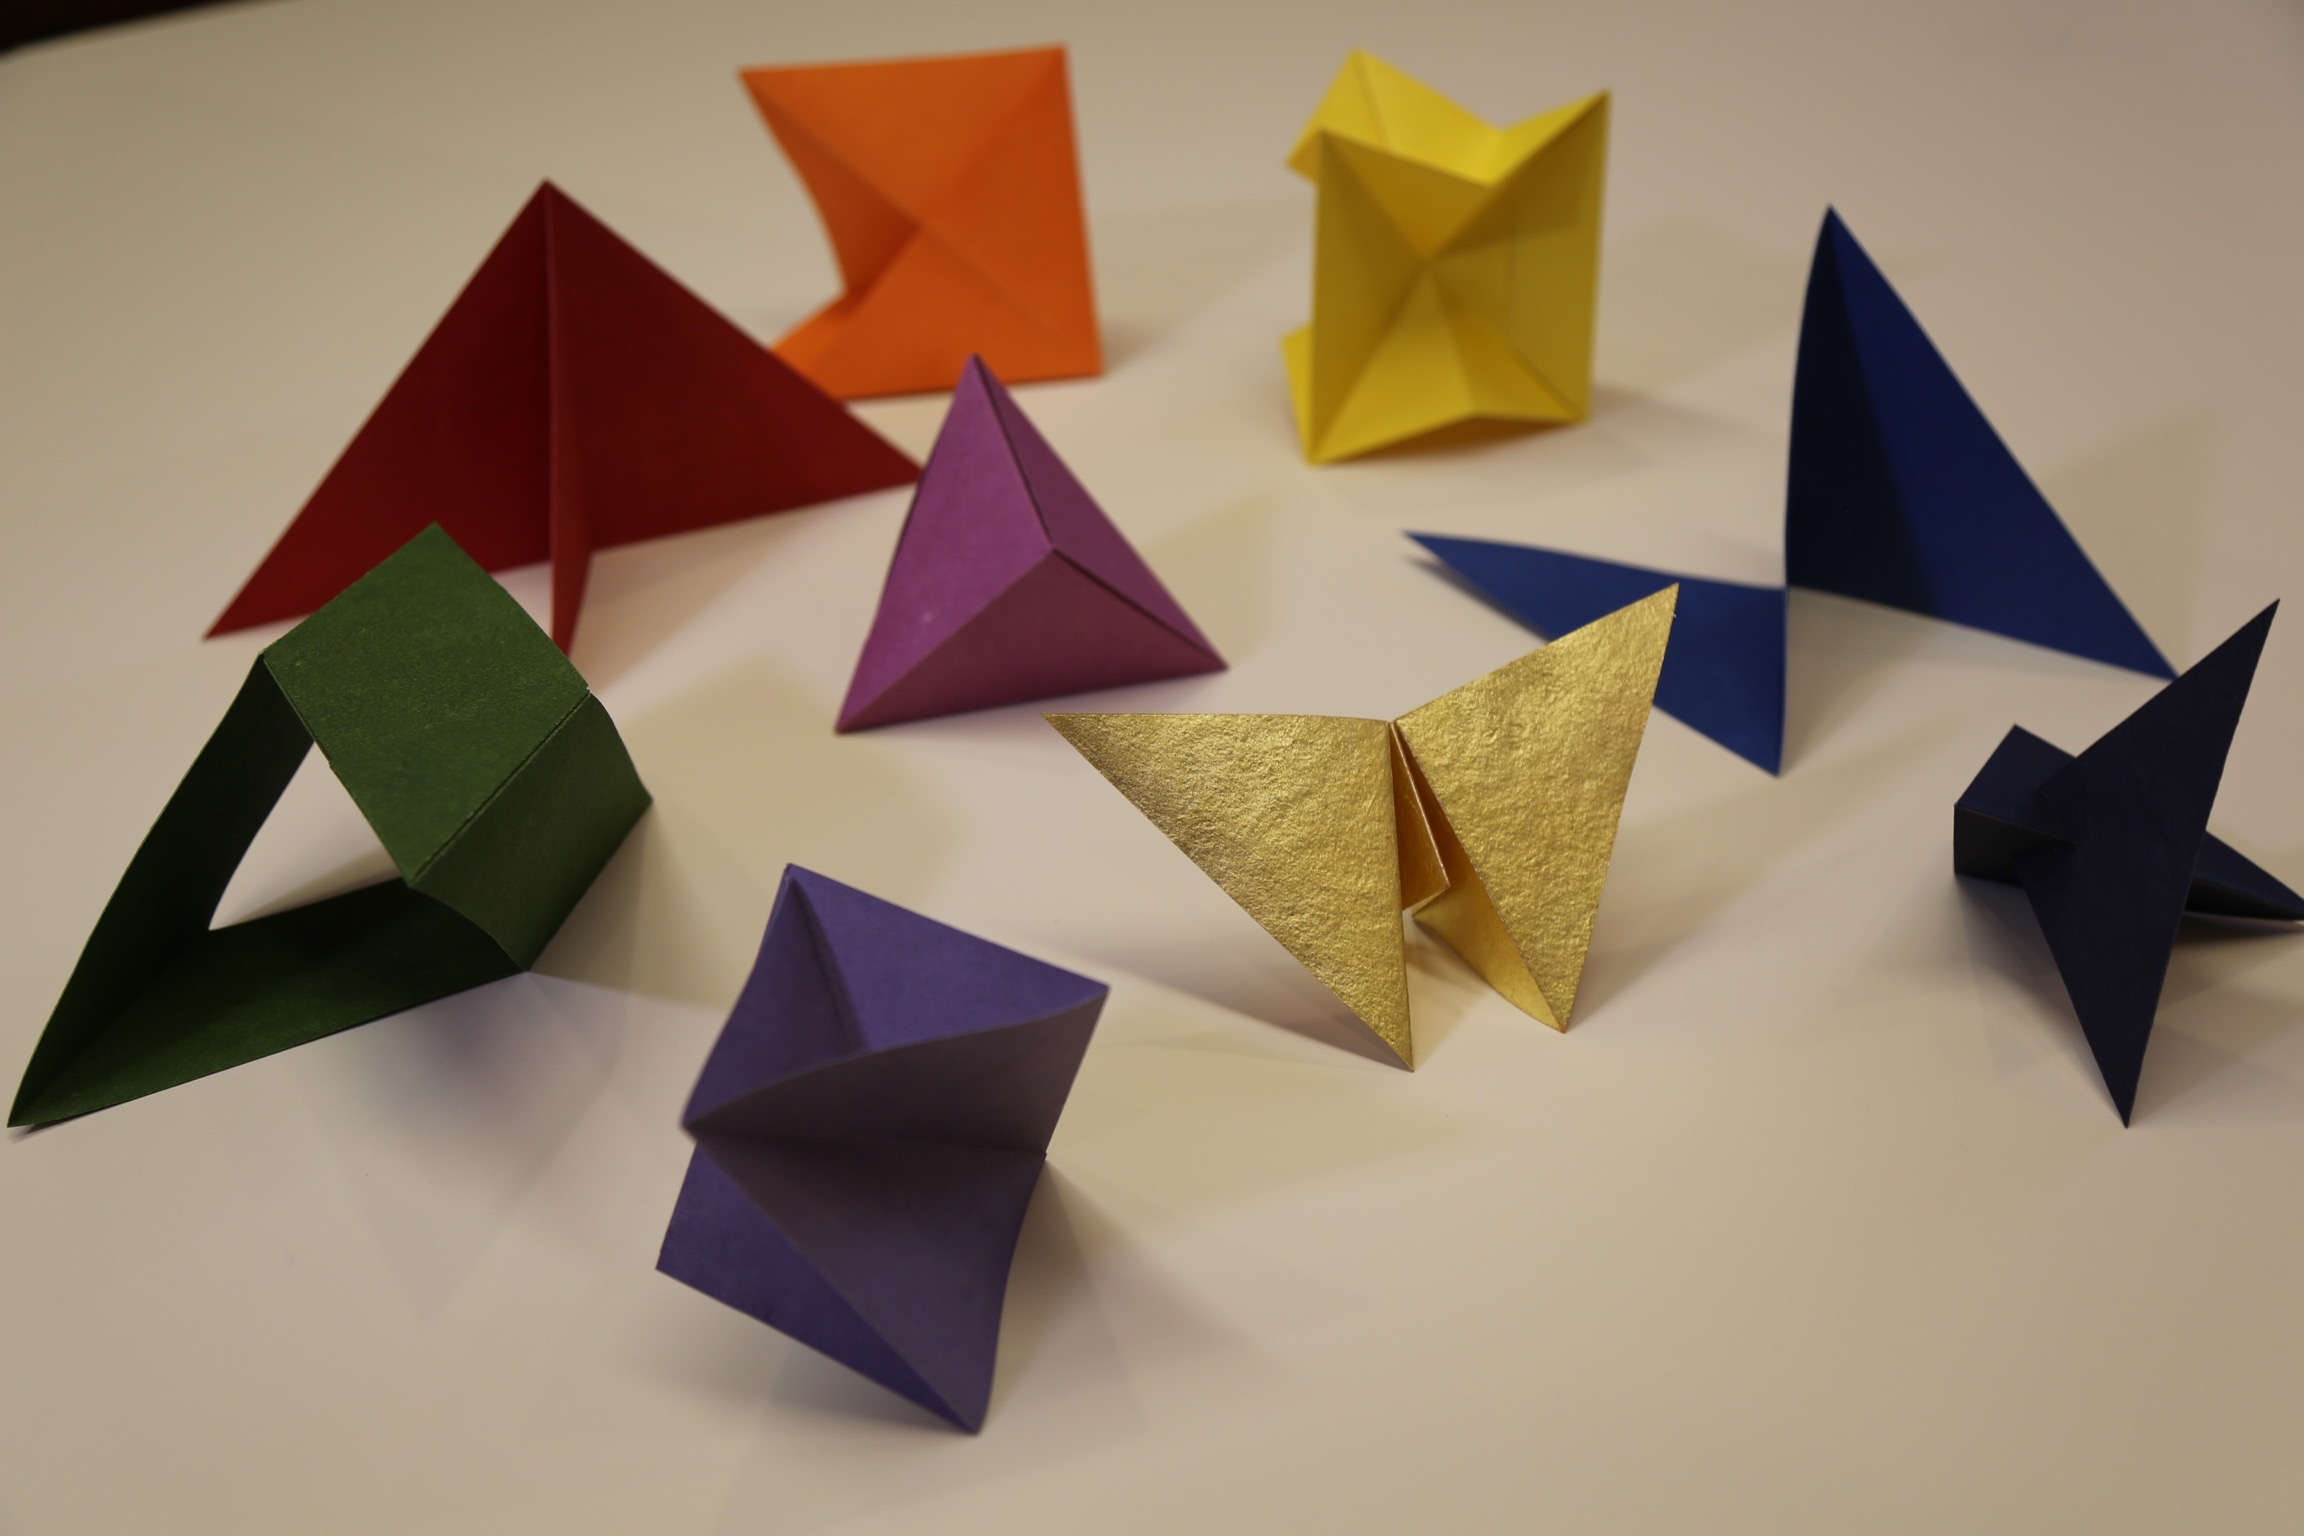 All of the nine paper structures unfolded and on display.